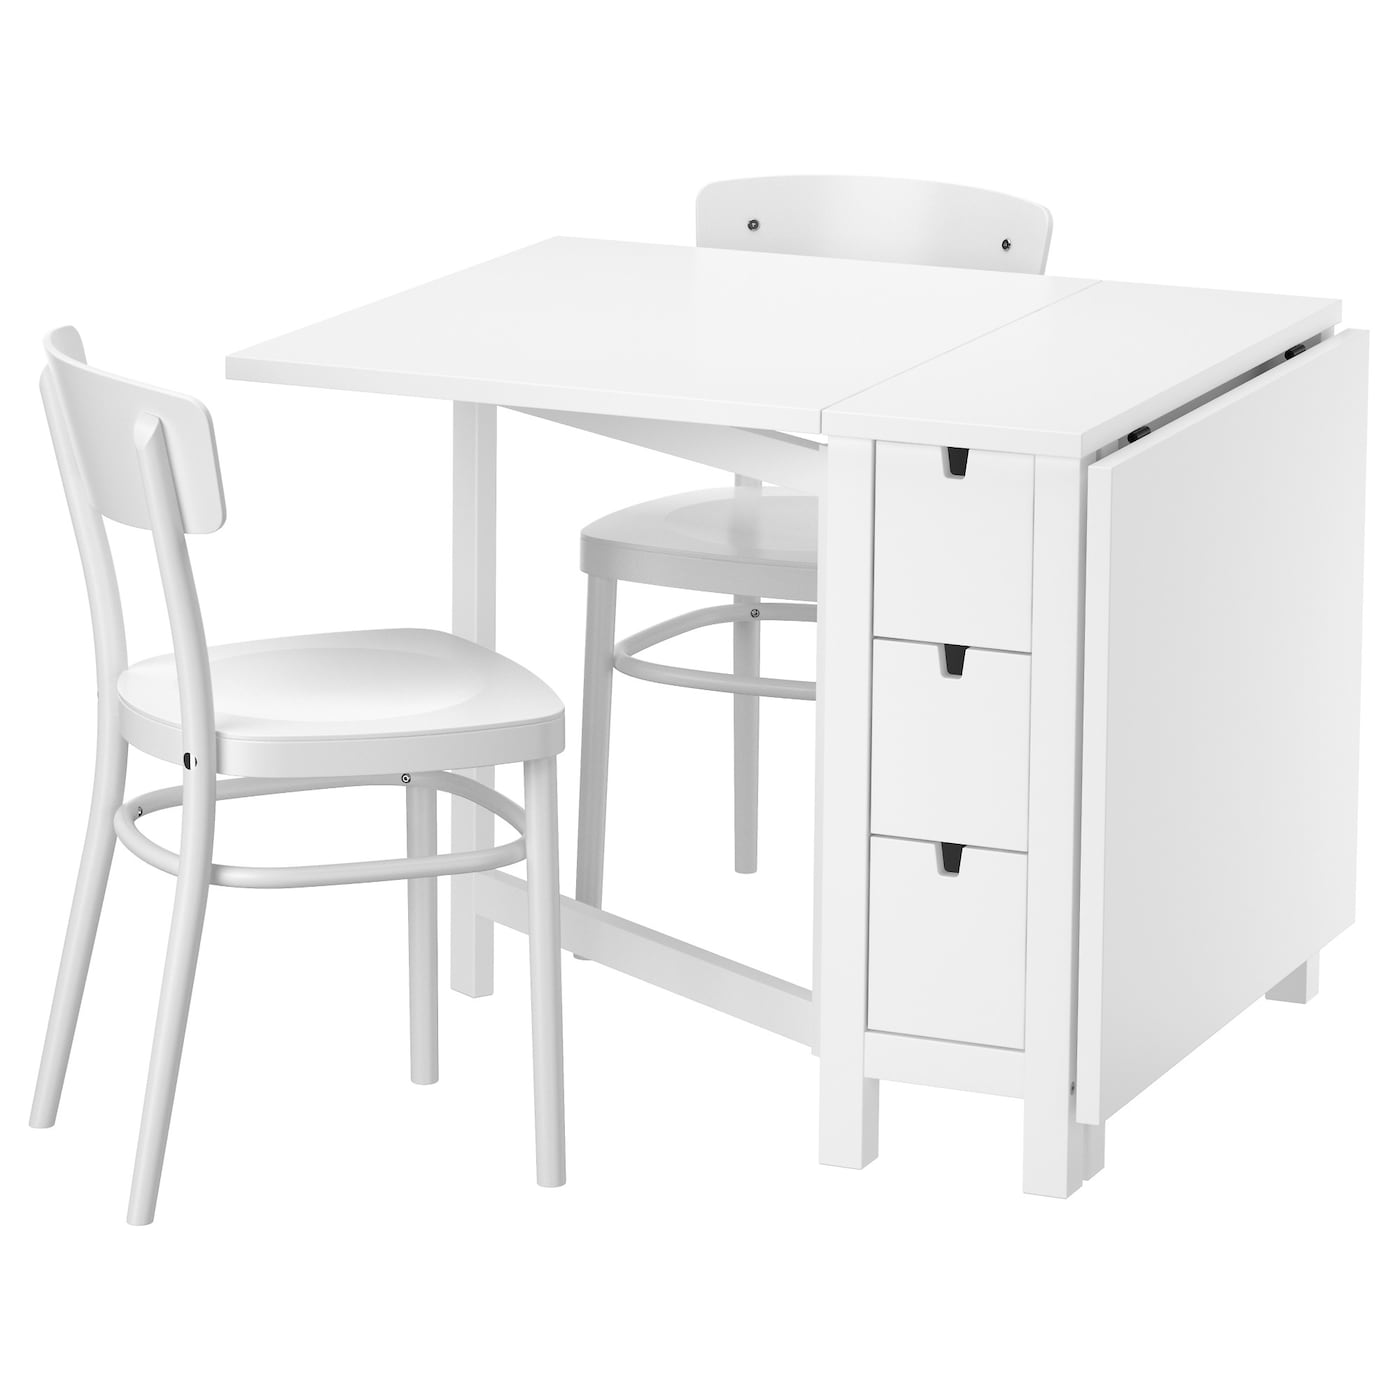 IKEA IDOLF/NORDEN table and 2 chairs